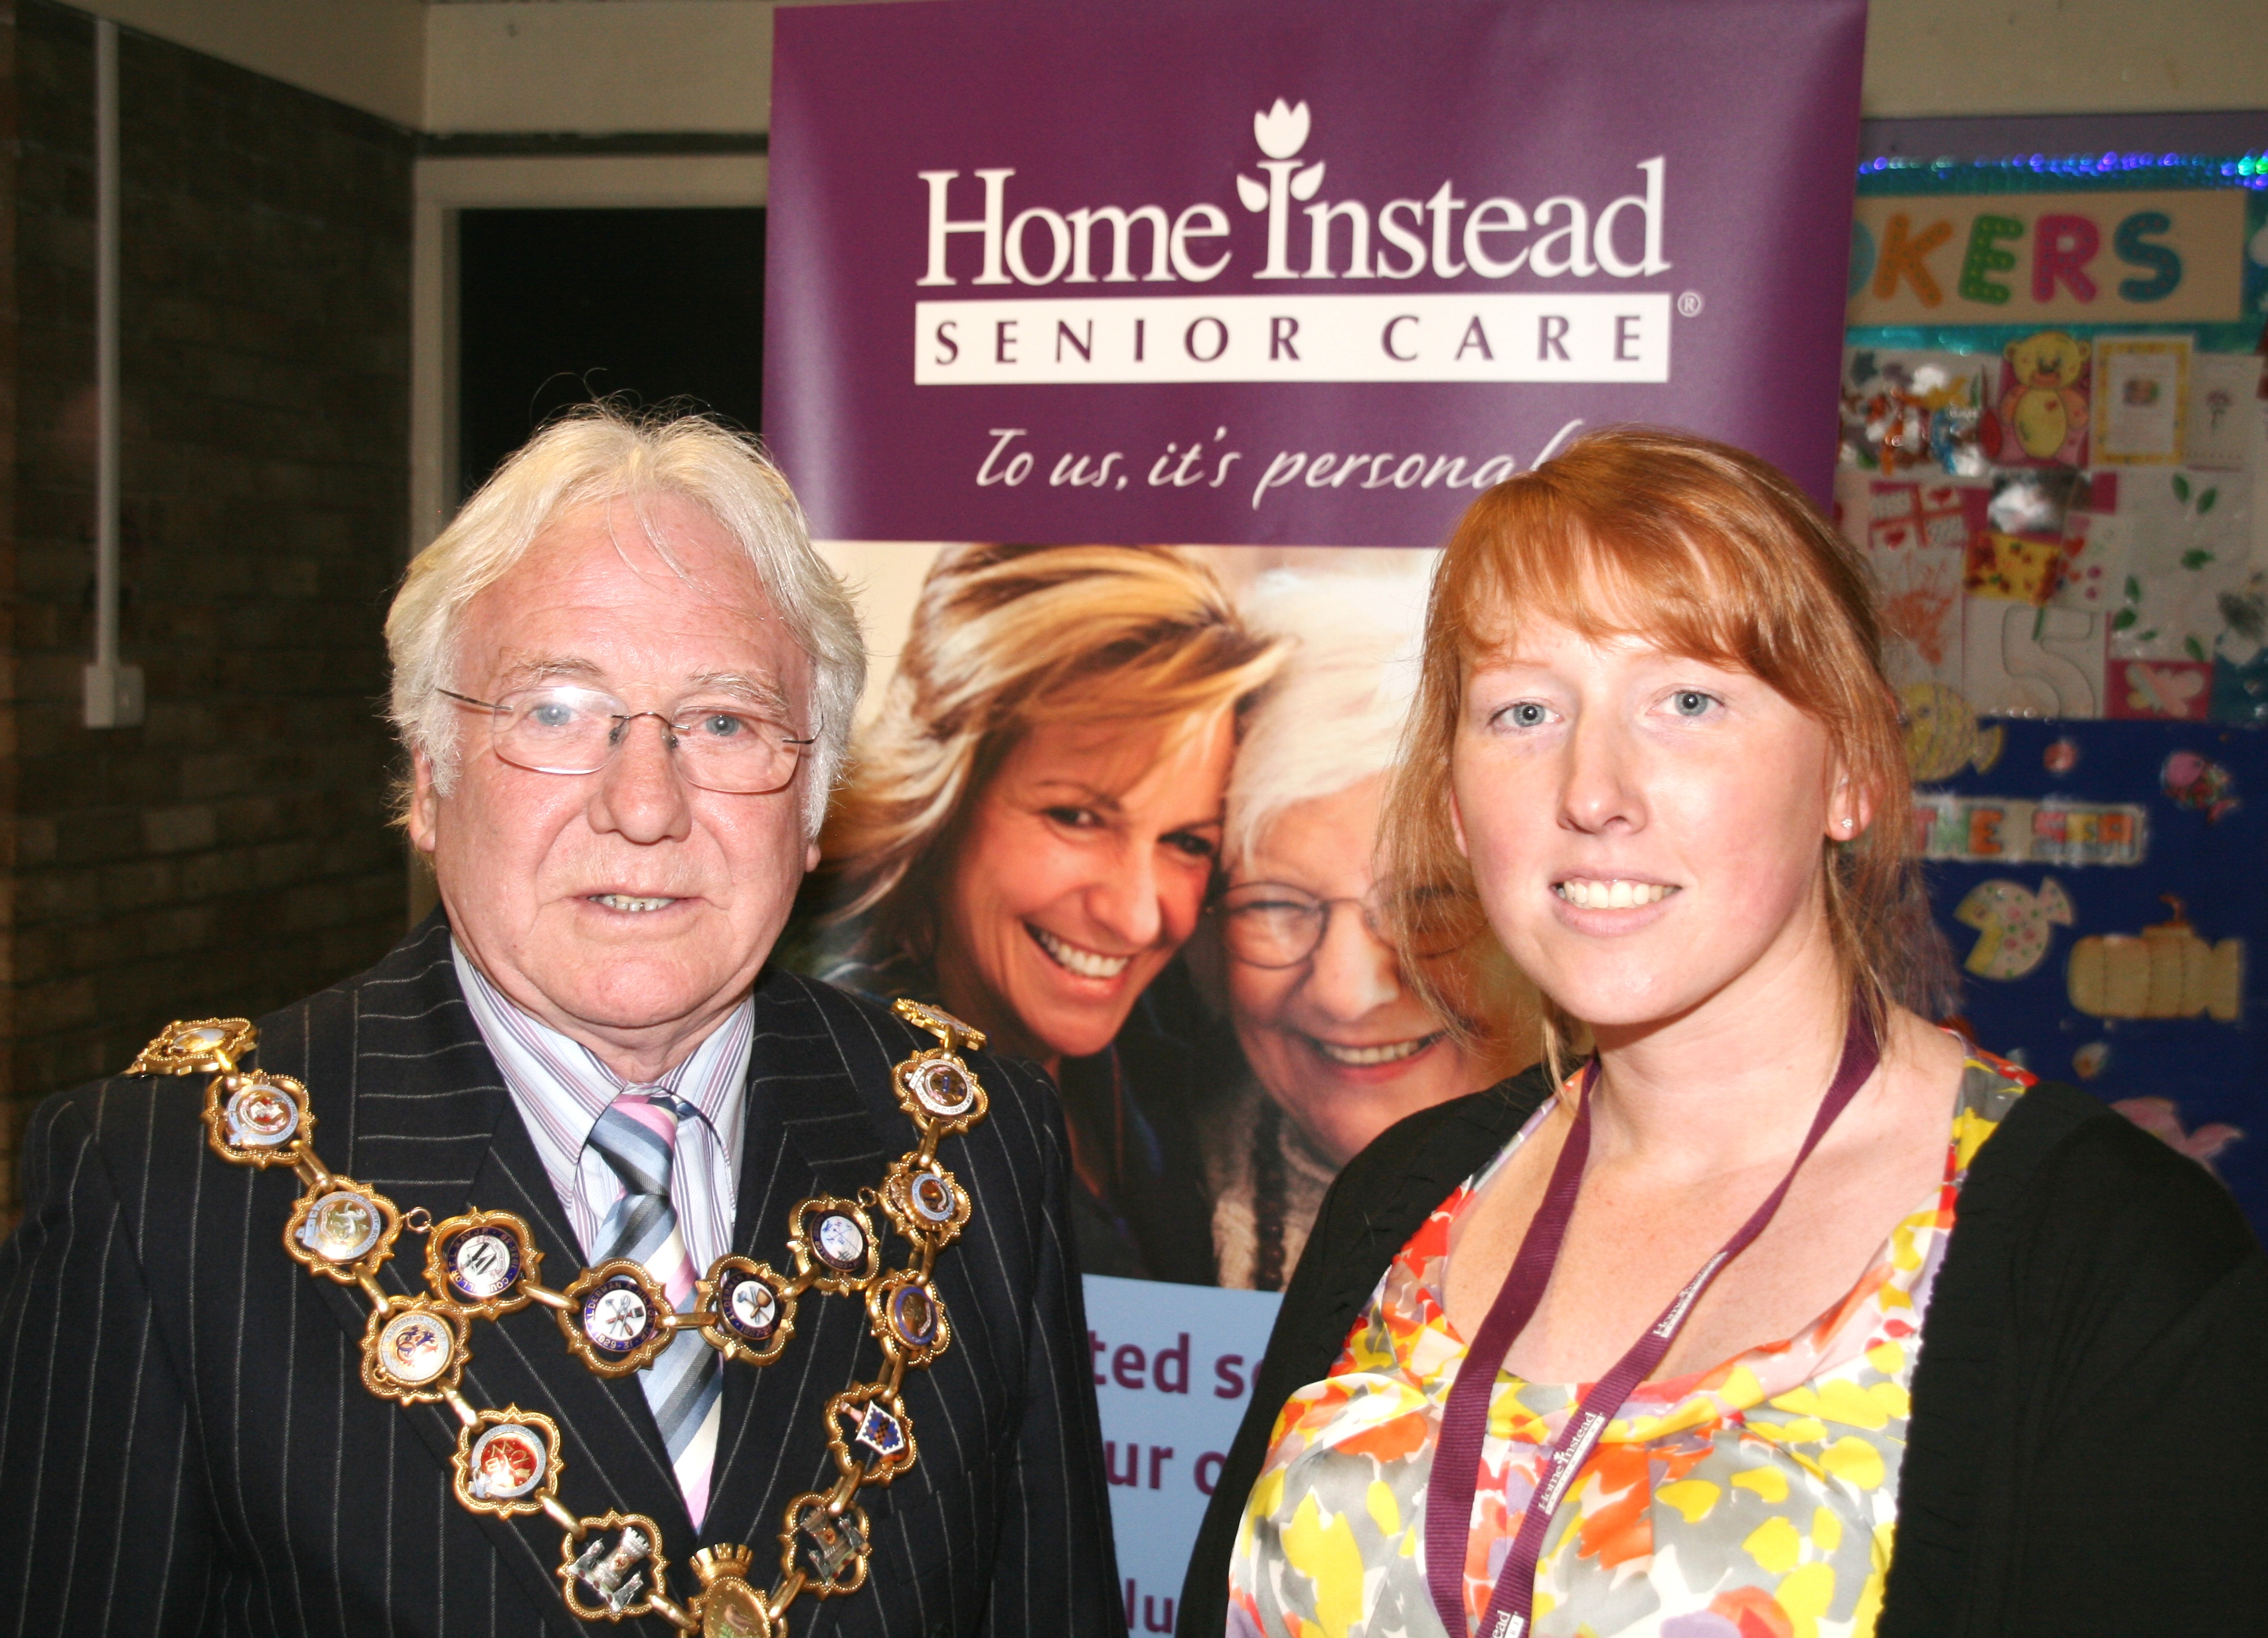 Home Instead Rochdale Care Manager Catherine Halliday with the Mayor Mr Alan Godson at the 'Healthy over 50s' event